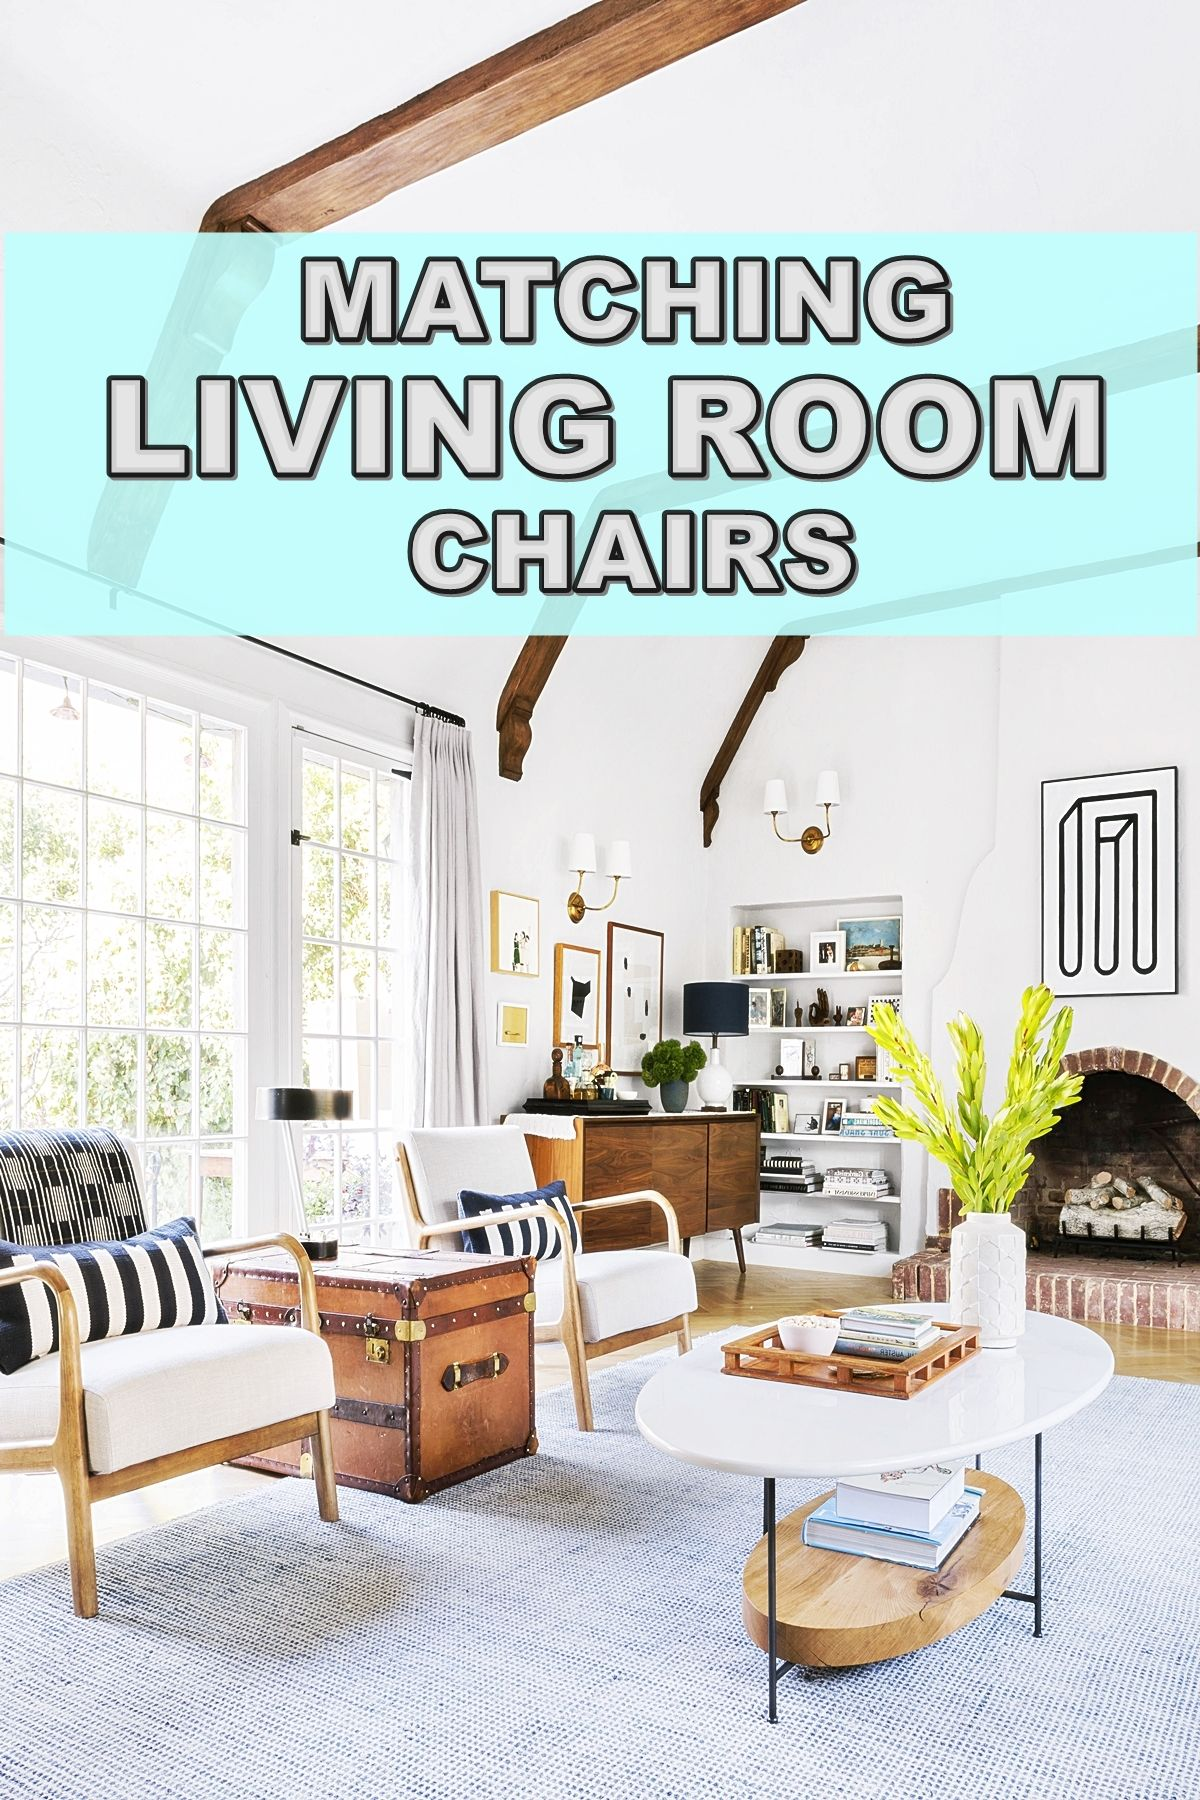 Matching Living Room Chairs Trends 7  Living room chairs